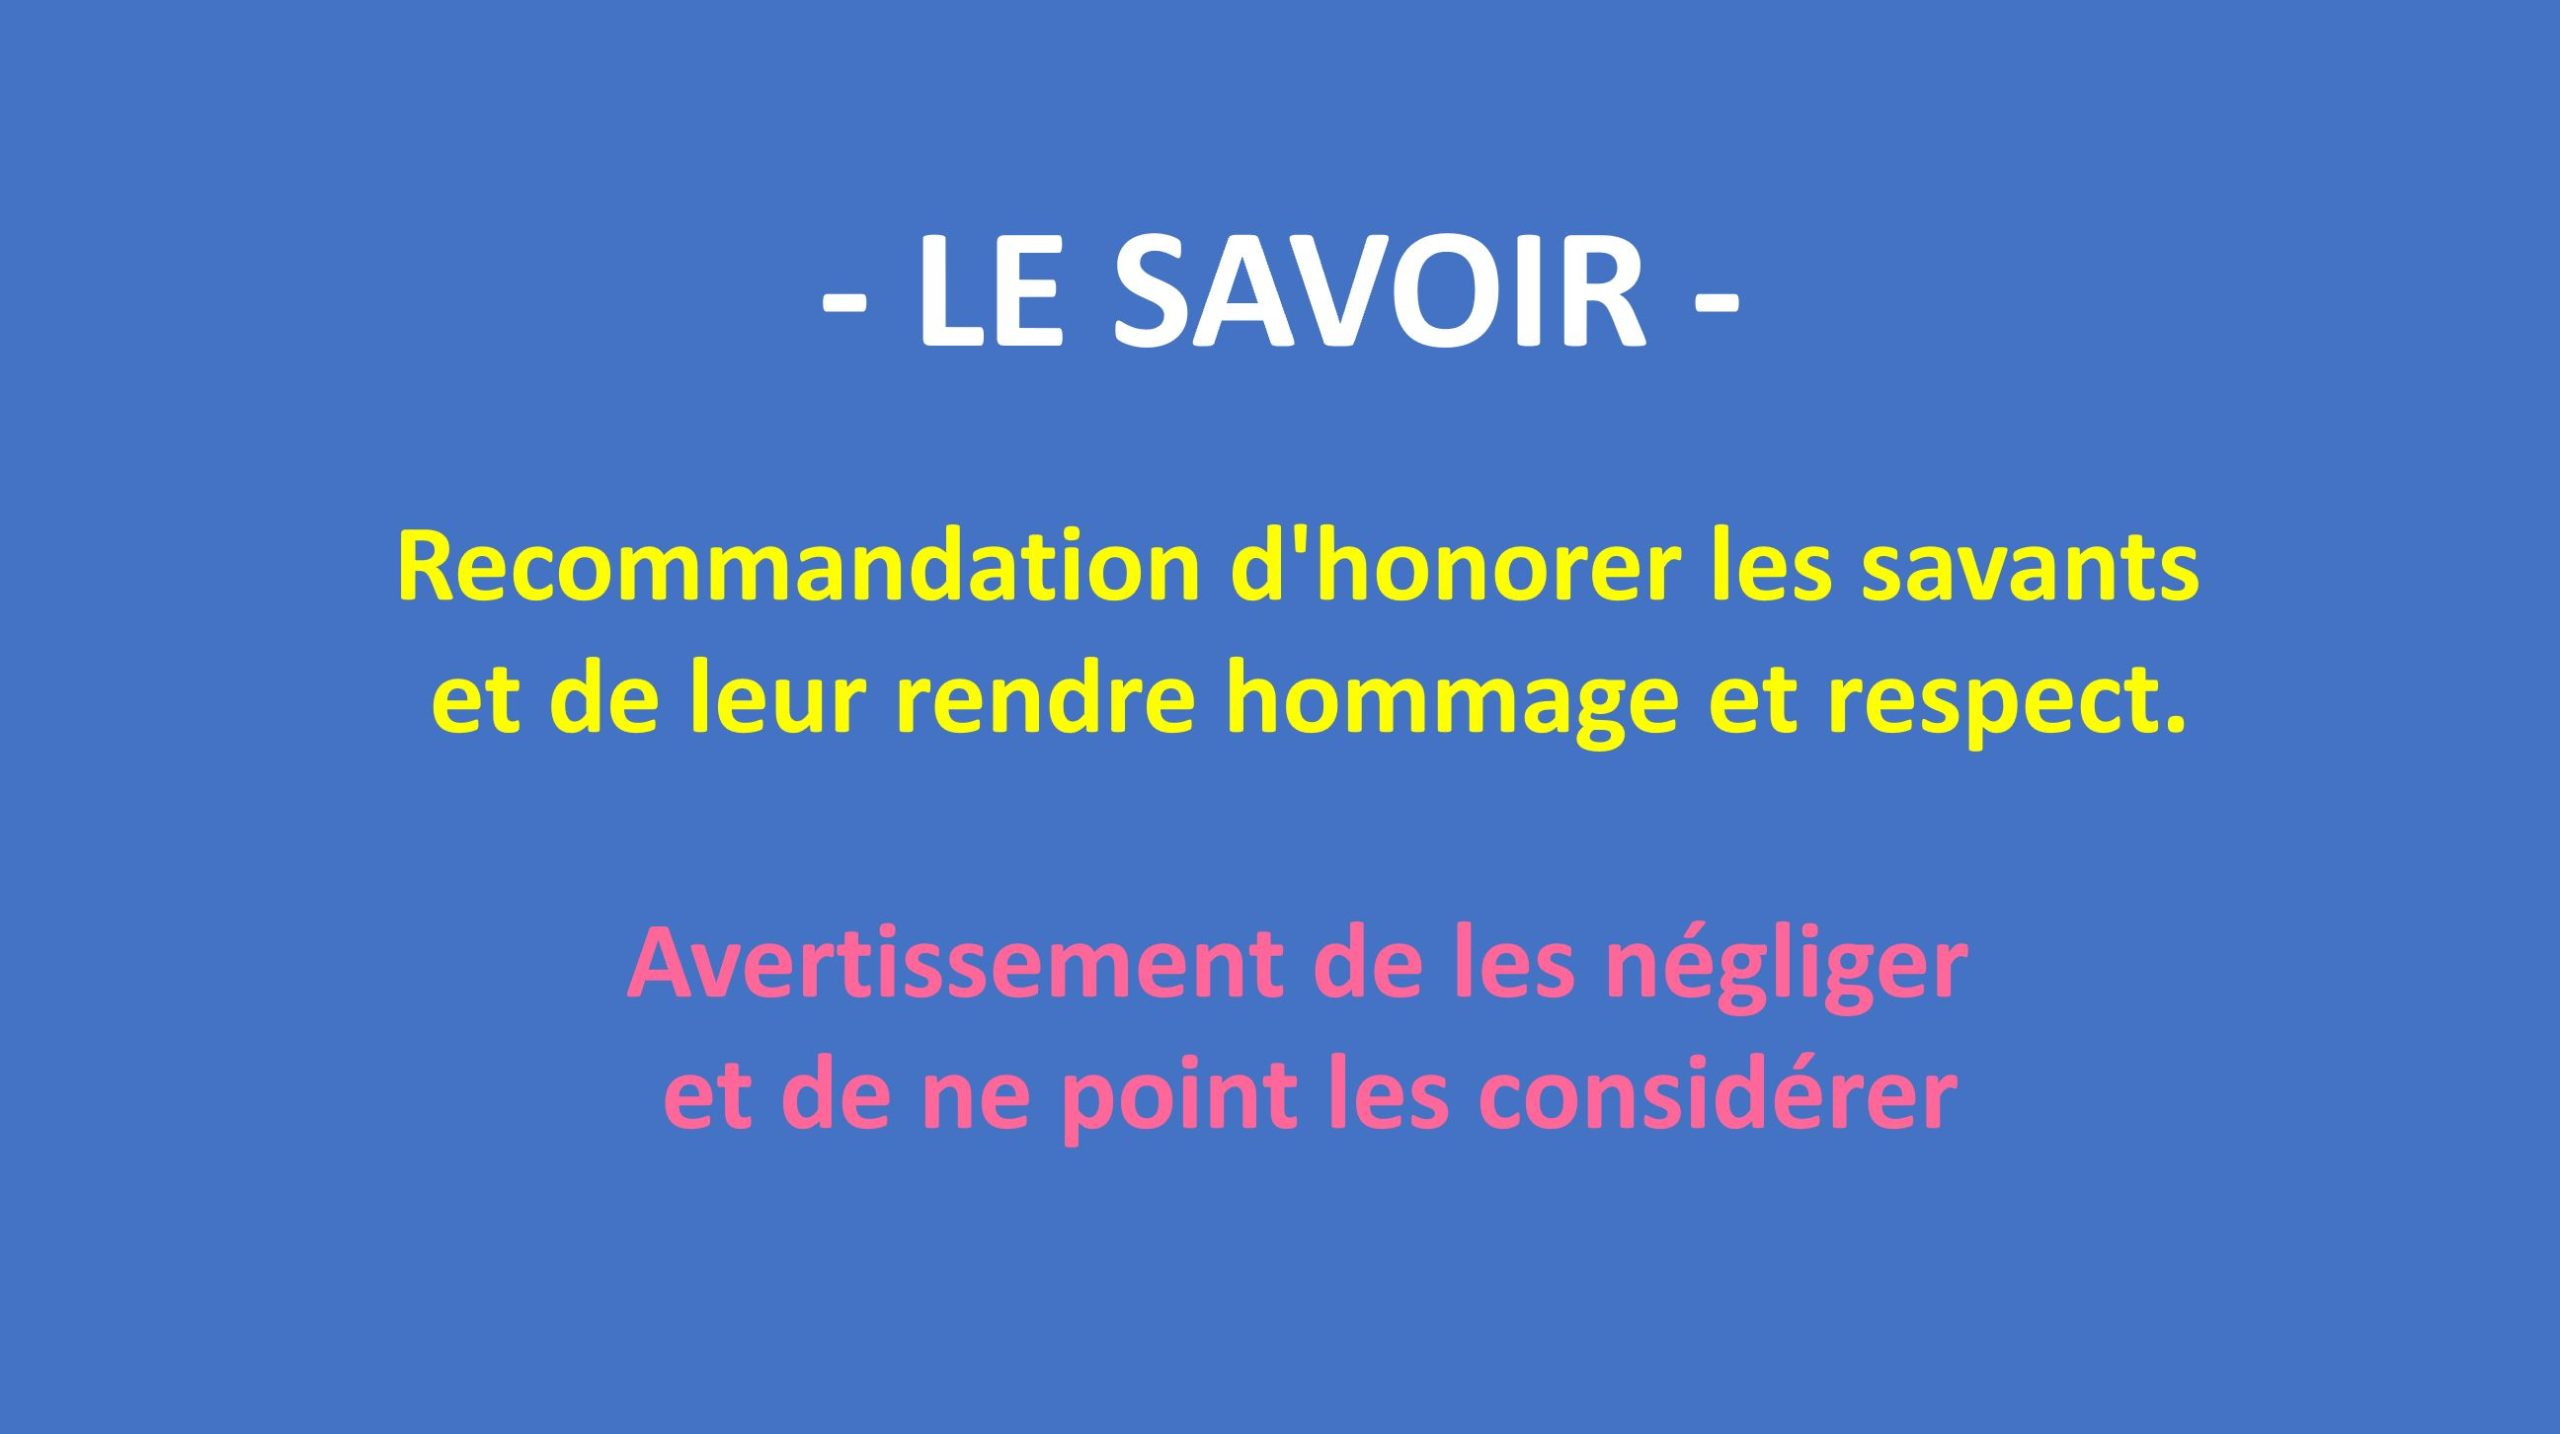 Serie de hadiths - Recommandation d'honorer les savants